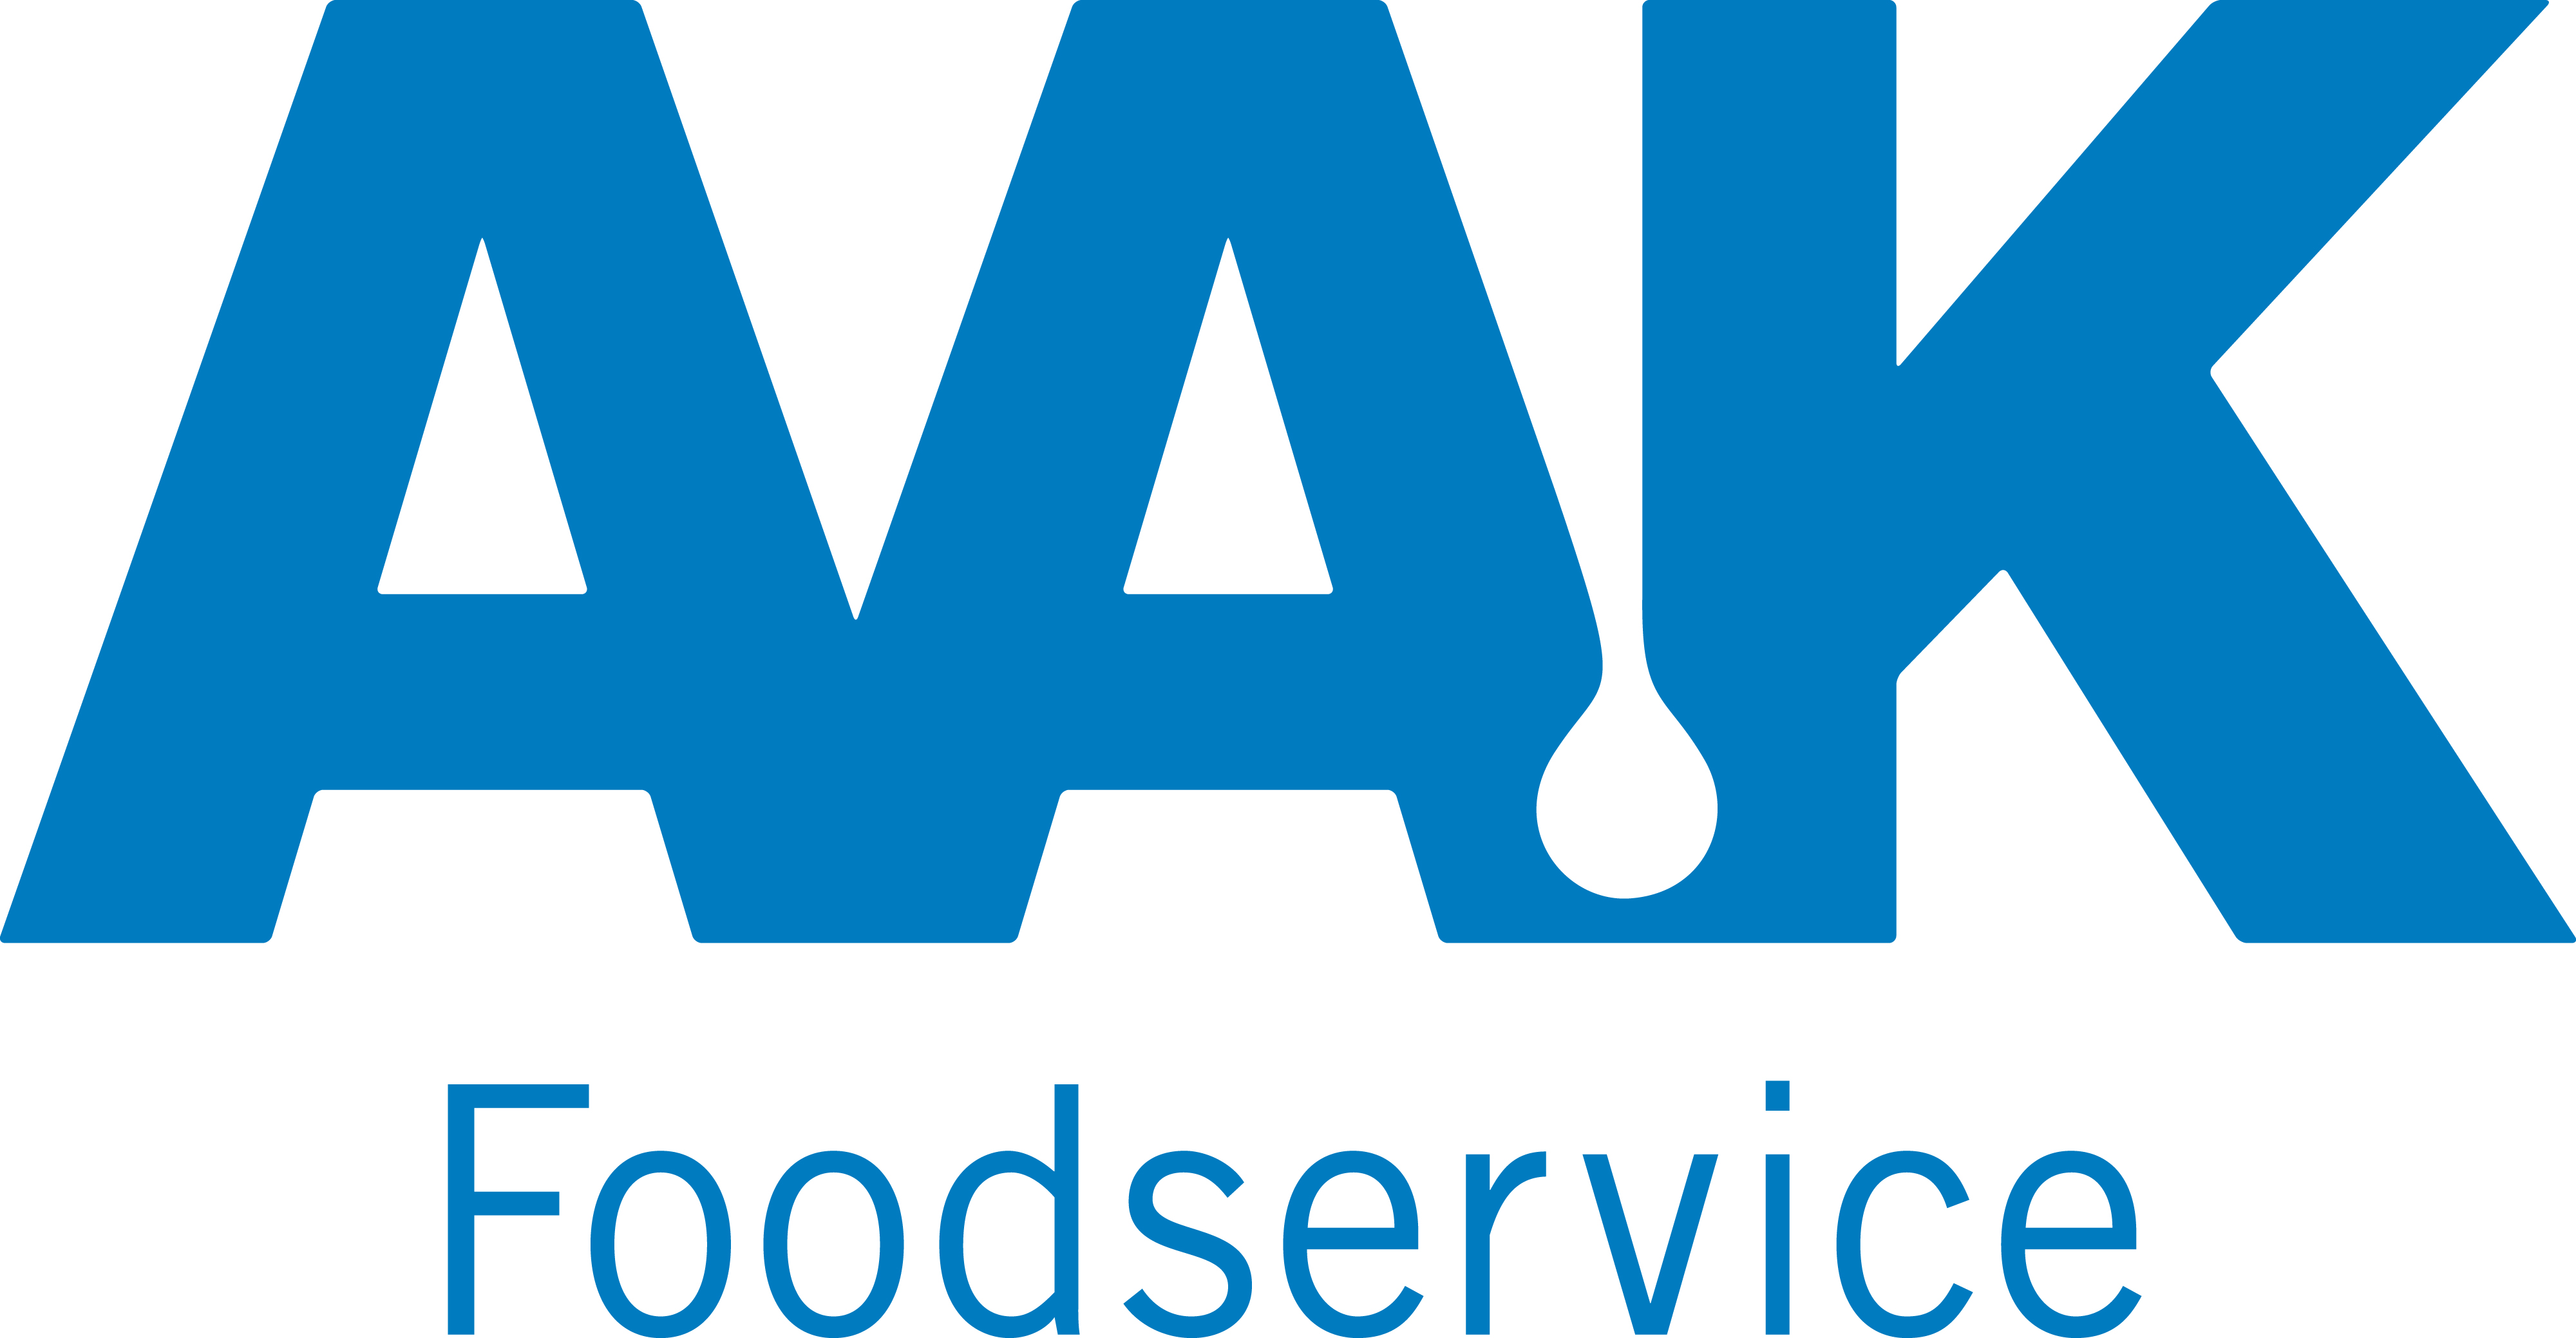 AAK Foodservice Logo large